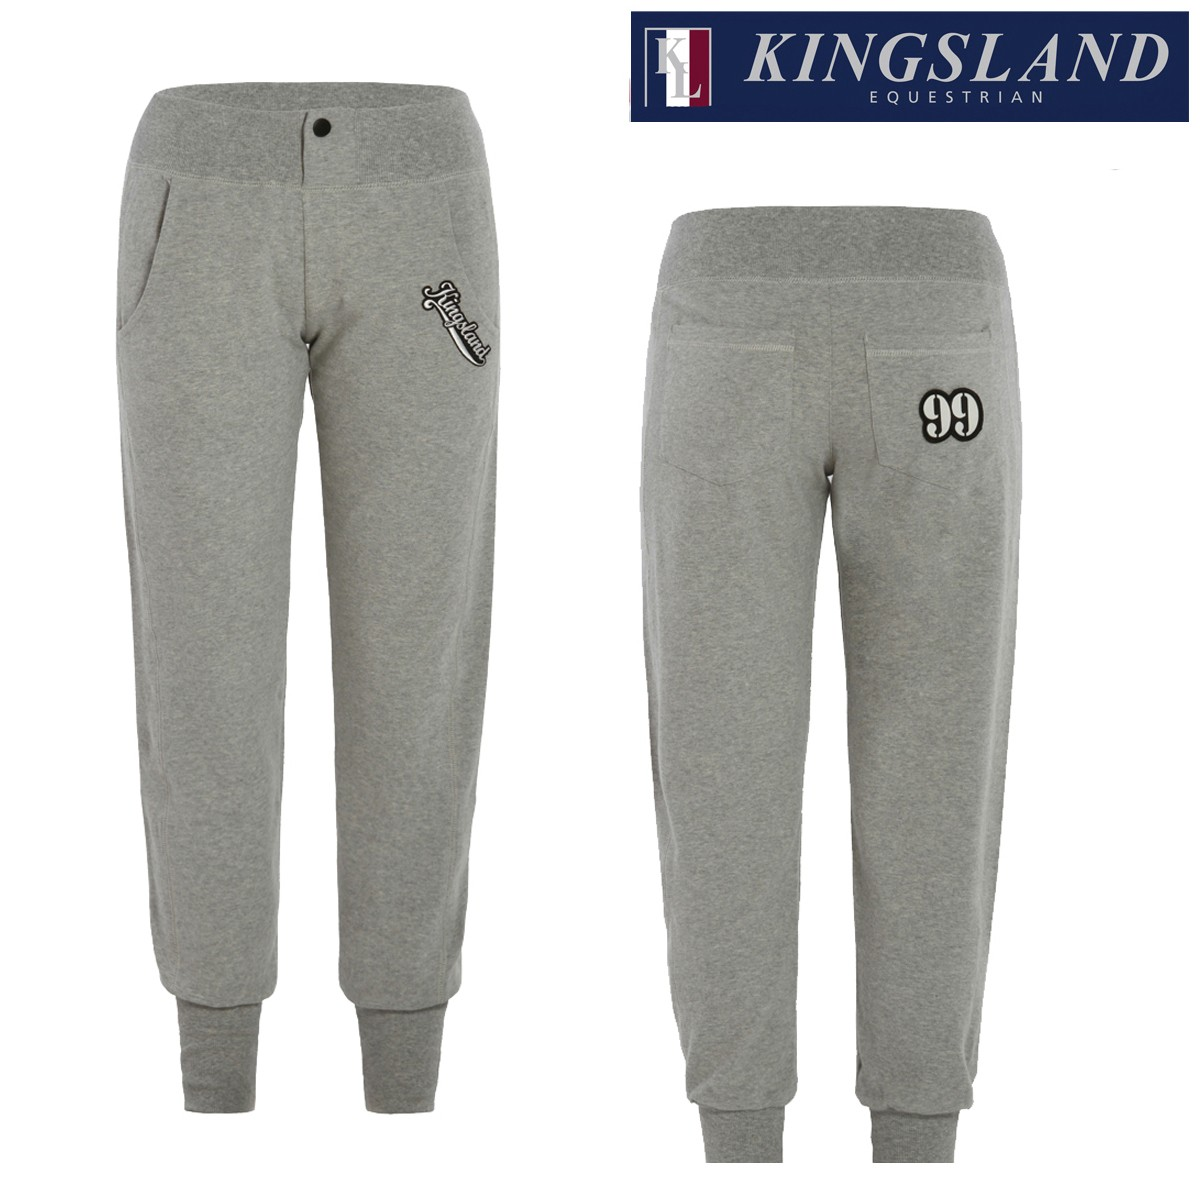 kl_hope_sweat_pants_light_grey_060_6